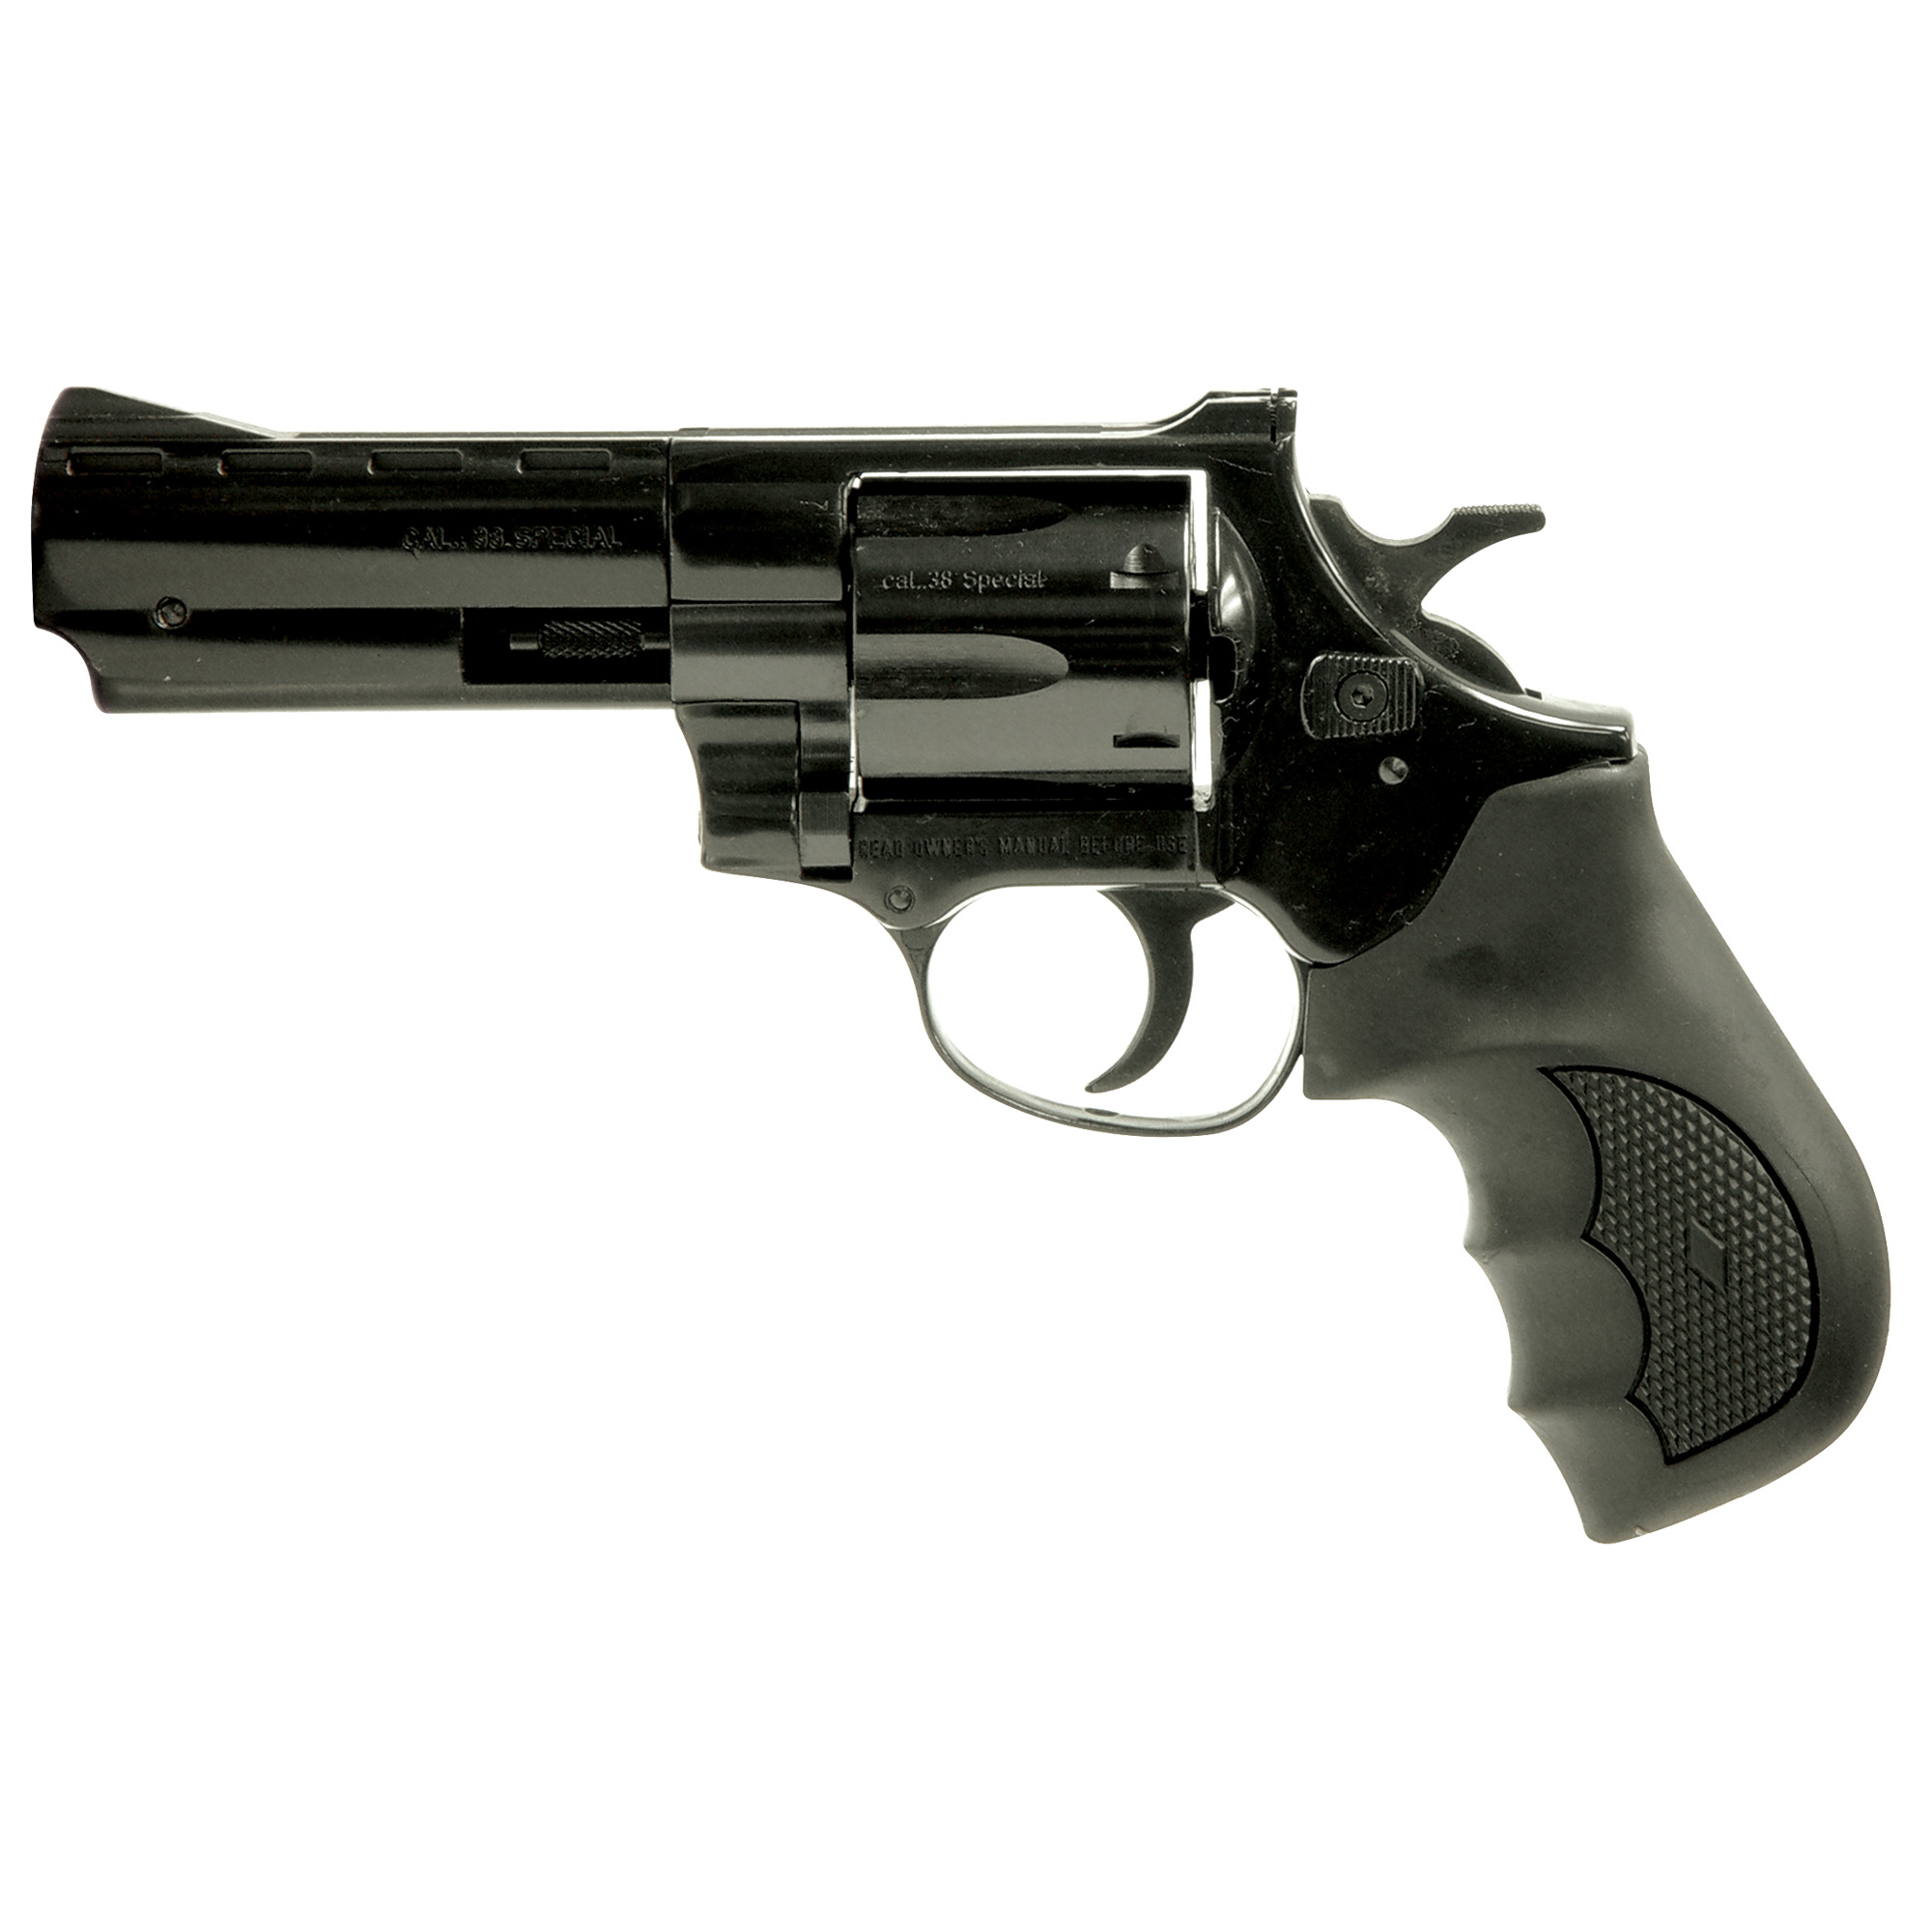 "This revolver has a long and proud history in the World of Small Arms. Known for its rugged dependability and consistency; depend on the Windicator for your revolver needs. With its six shot"" double/single action"" the Windicator gets the job done!"